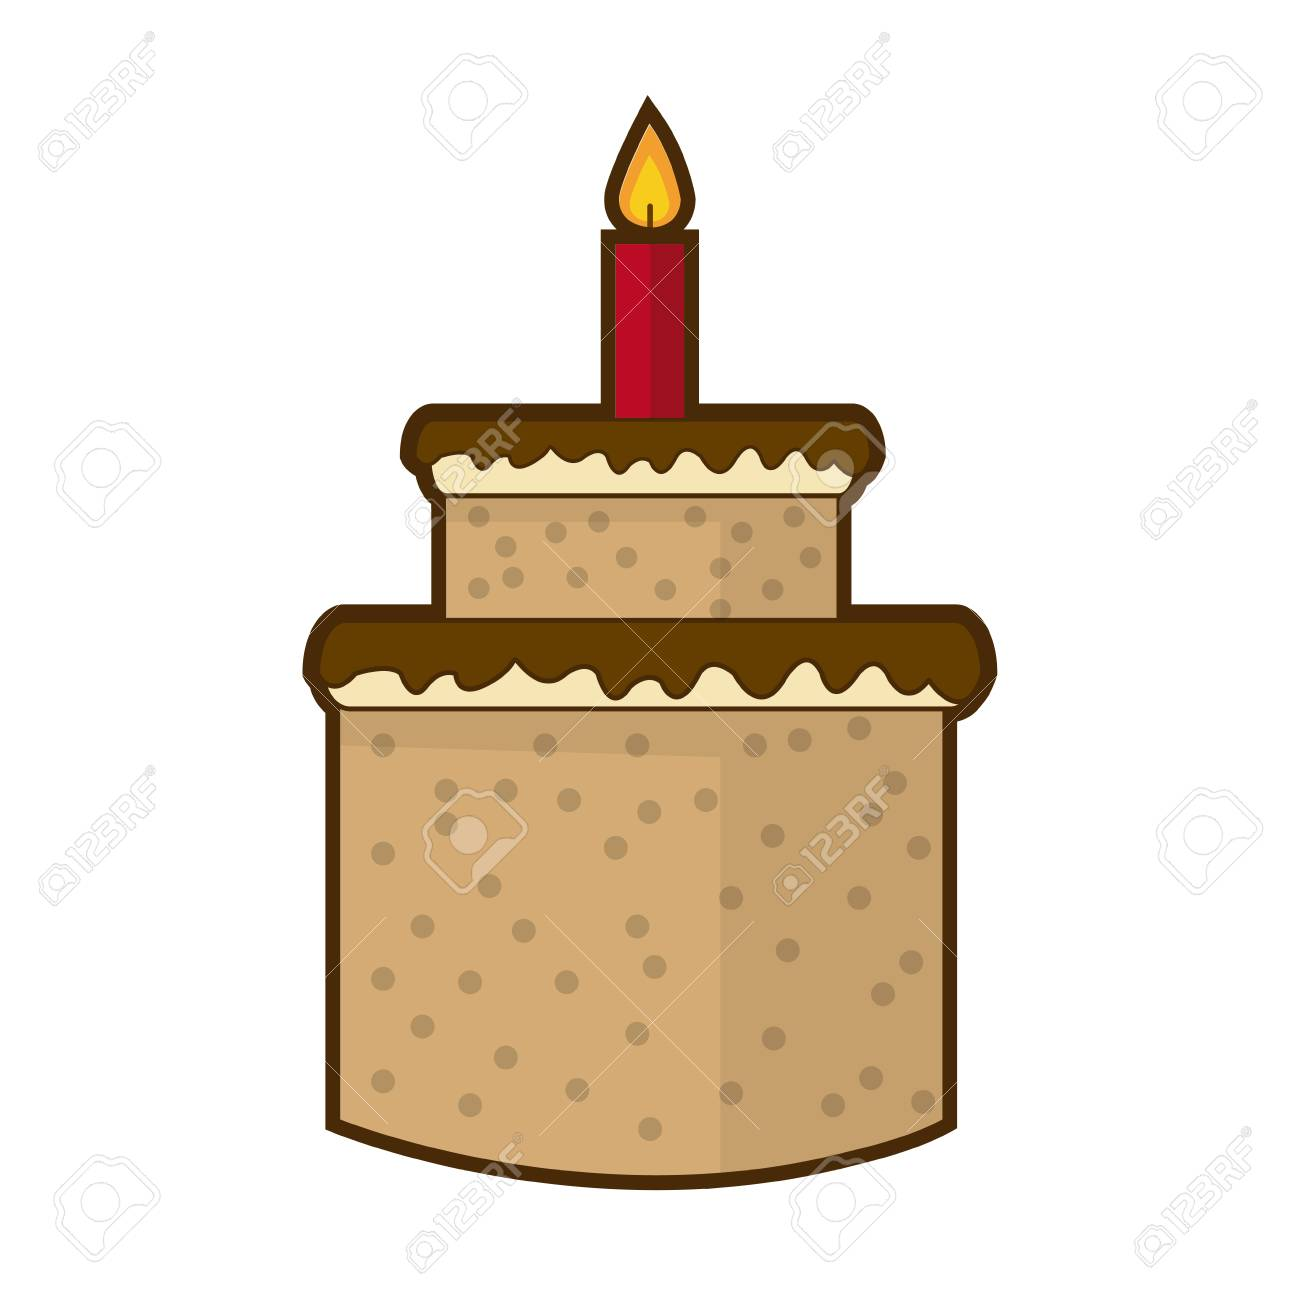 Cream Birthday Cake With Burning Candles Vector Illustration Royalty